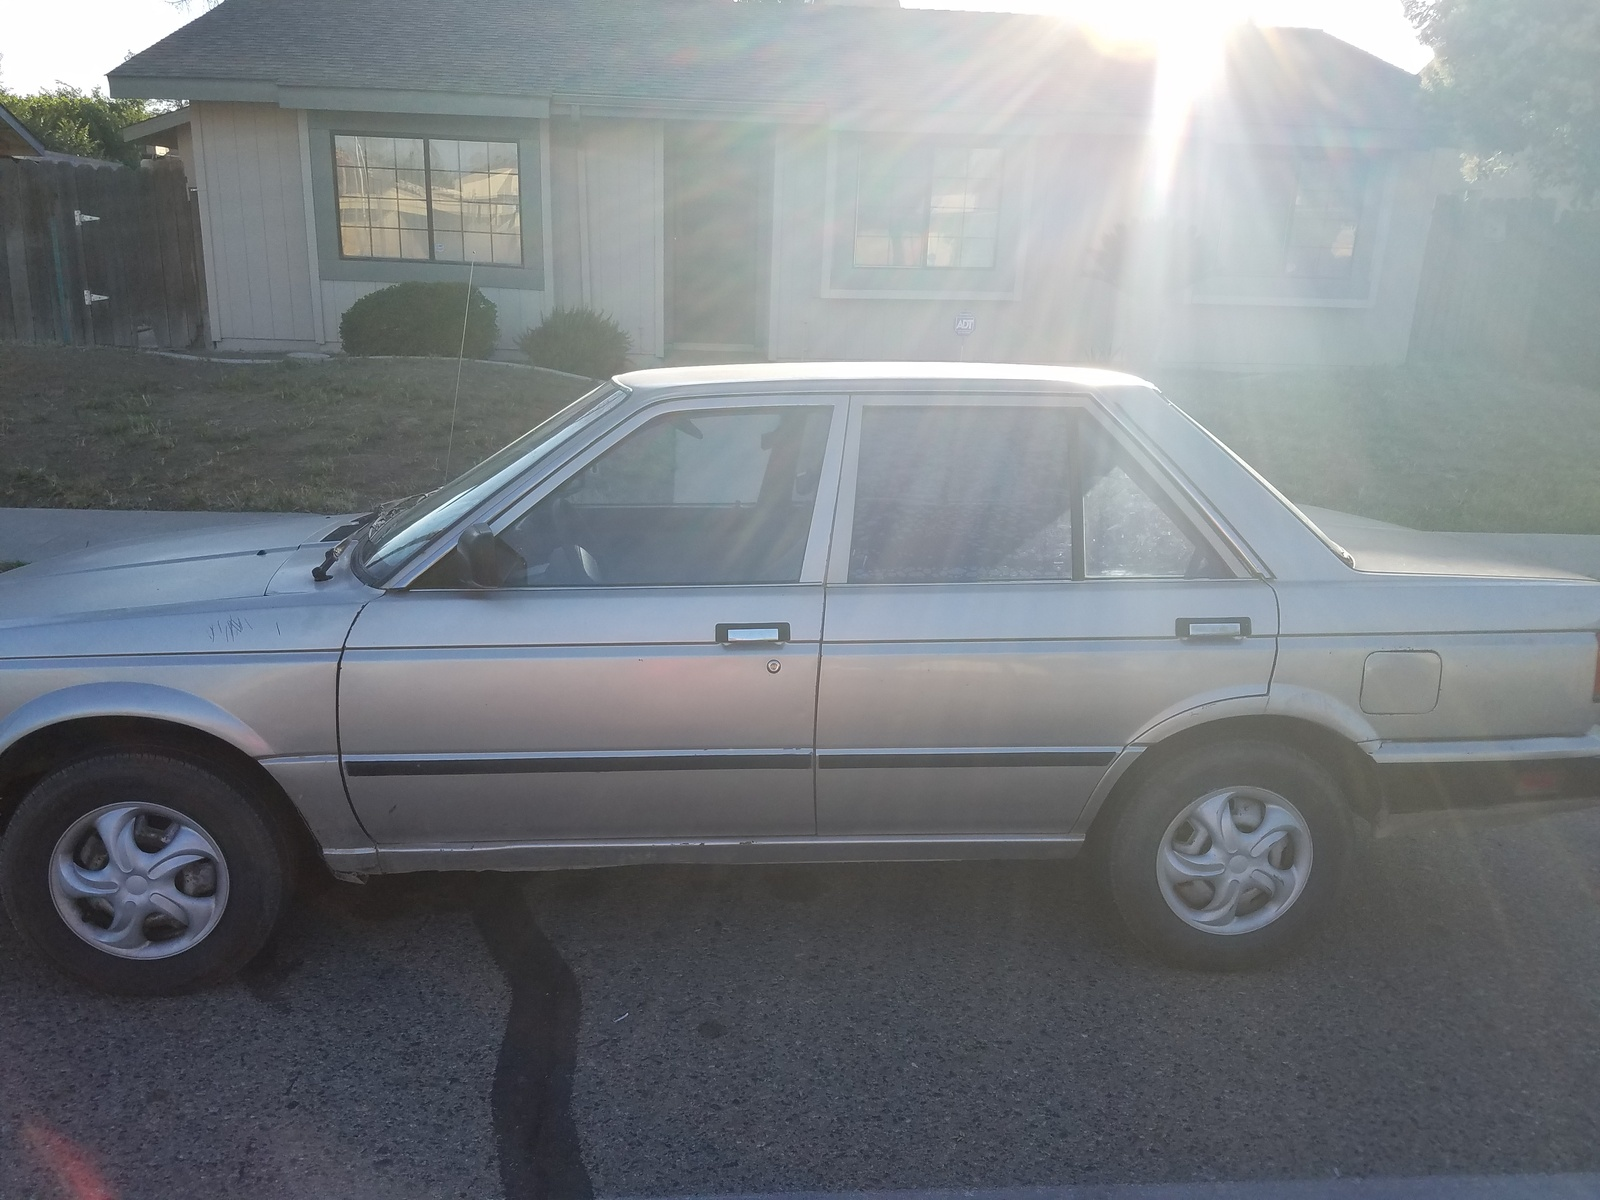 1990 Nissan Sentra Test Drive Review Cargurus Read reviews, browse our car inventory, and more. 1990 nissan sentra test drive review